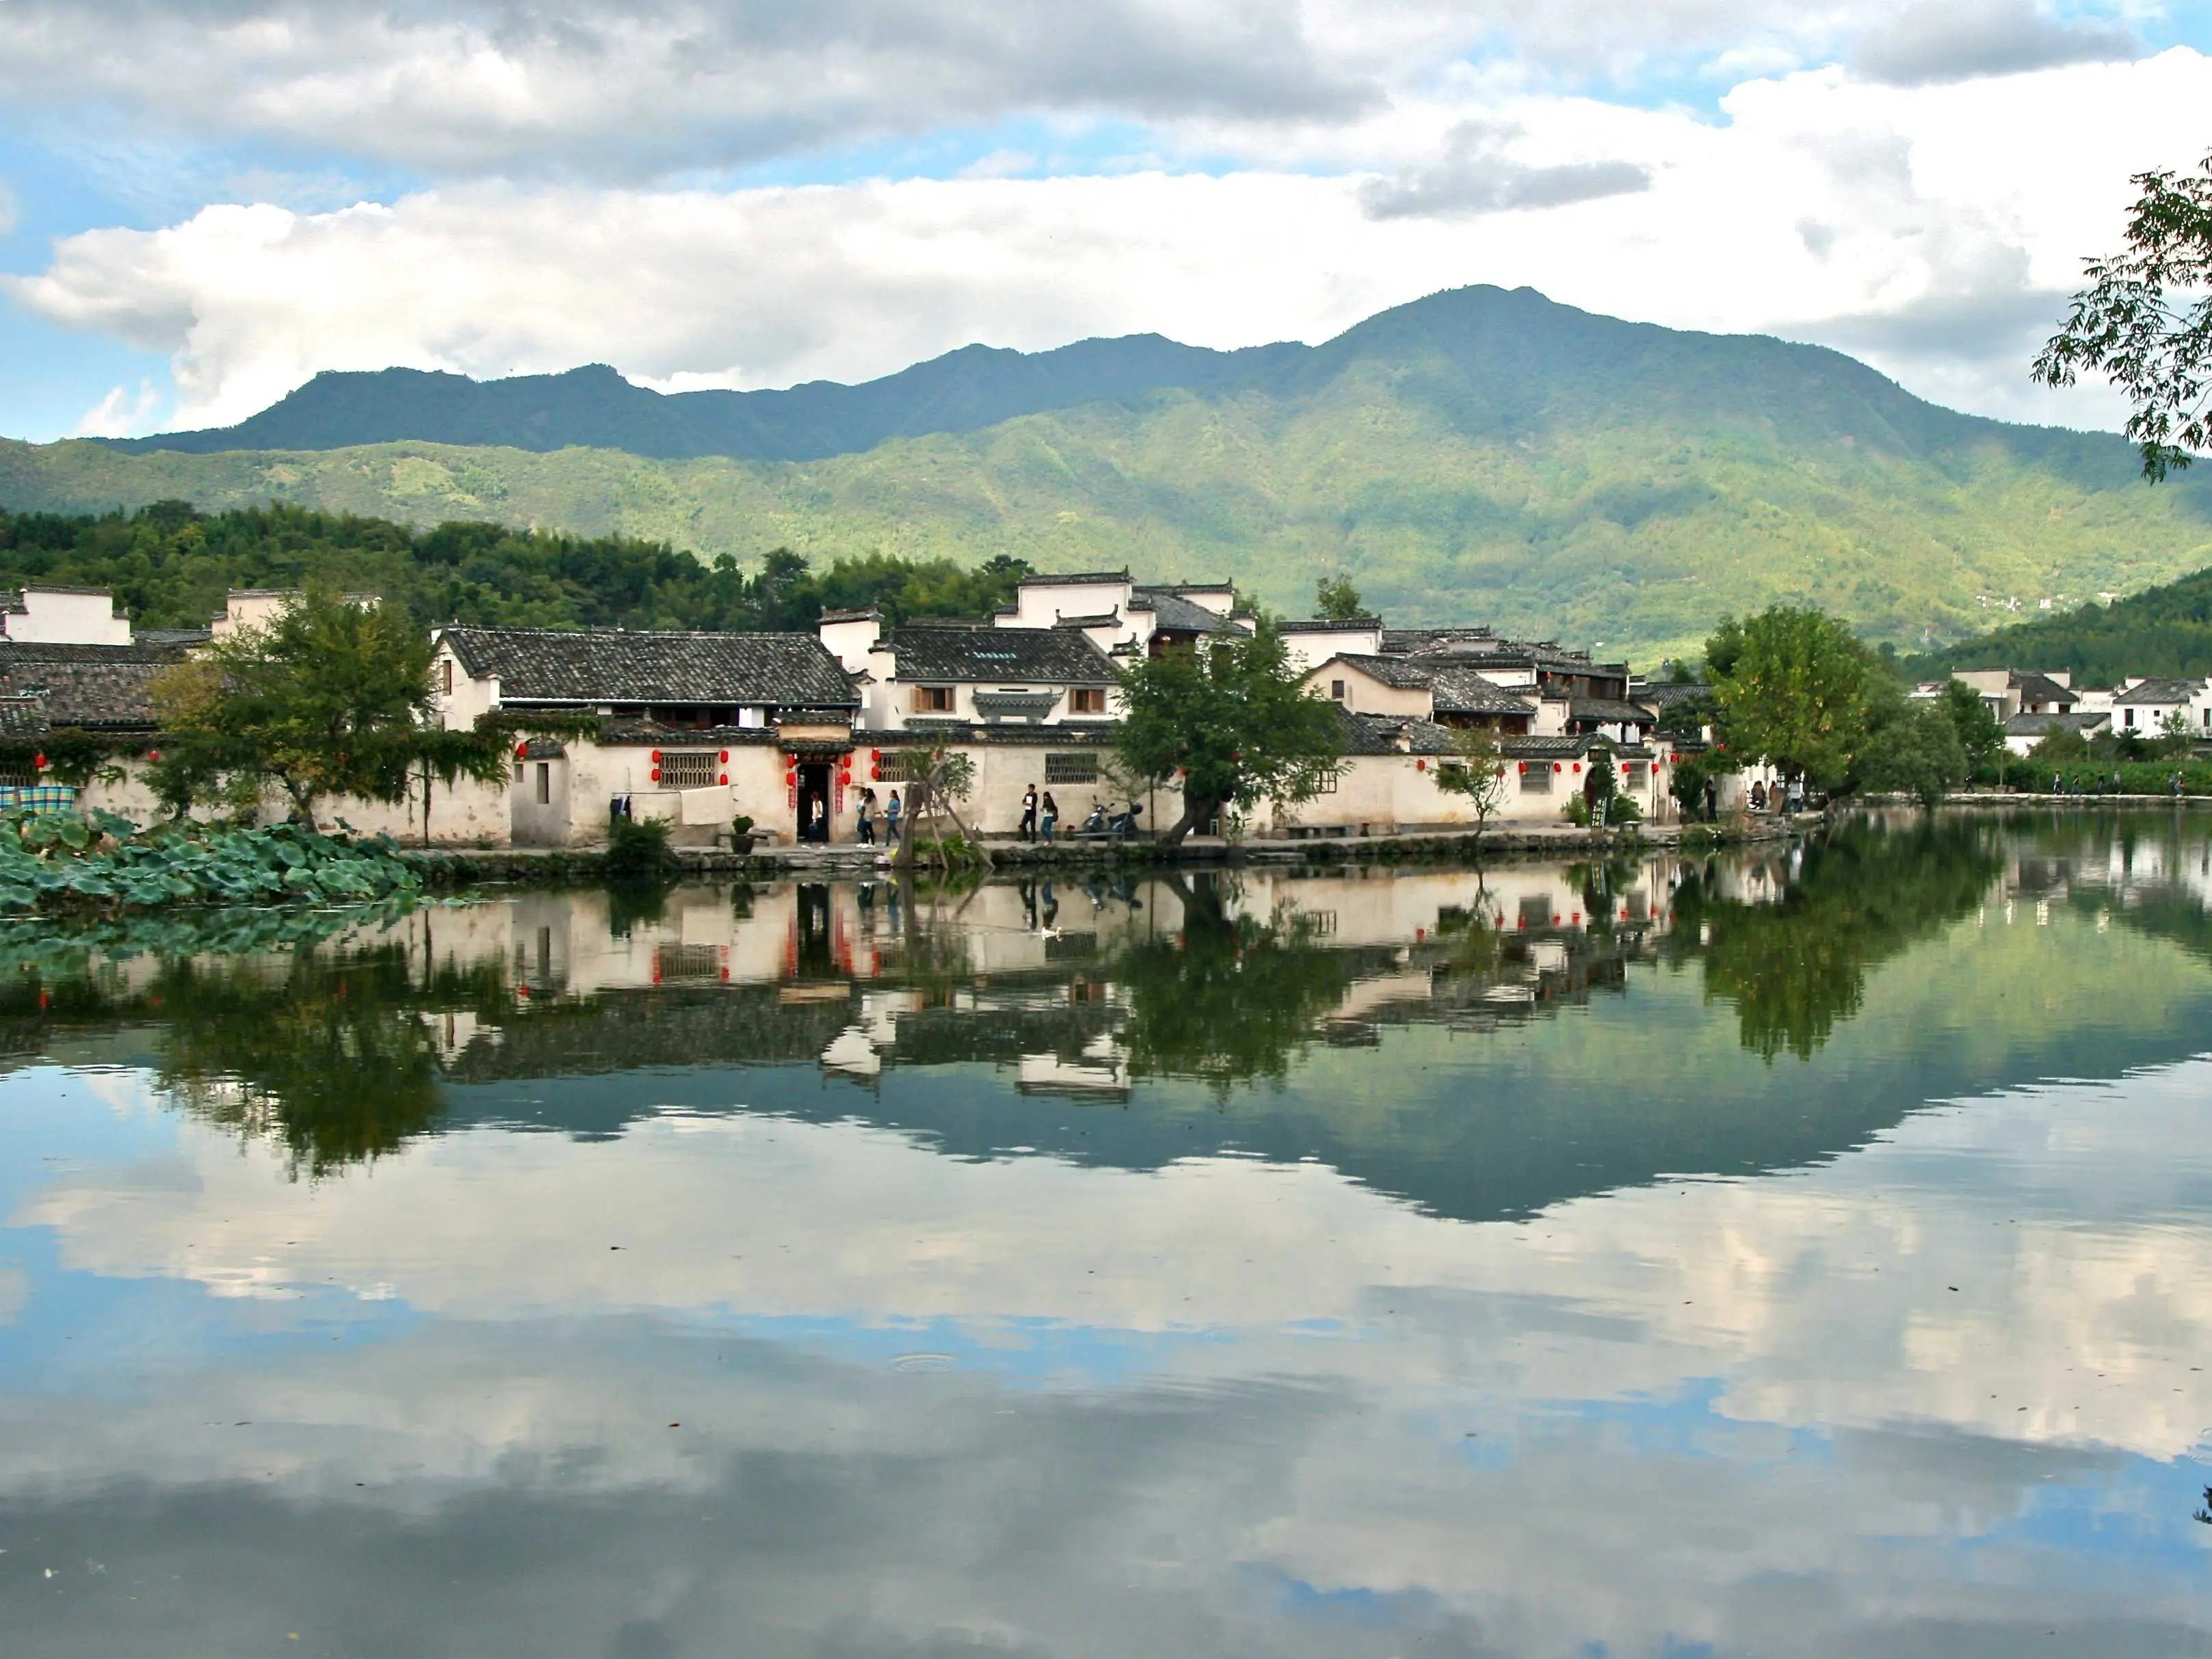 Hongcun, also located in China's Yi County, has around 150 residences that also date back to the Ming and Qing Dynasties, and one of the biggest, the Chenzi Hall, also contains a small museum where you can learn about the area's history.